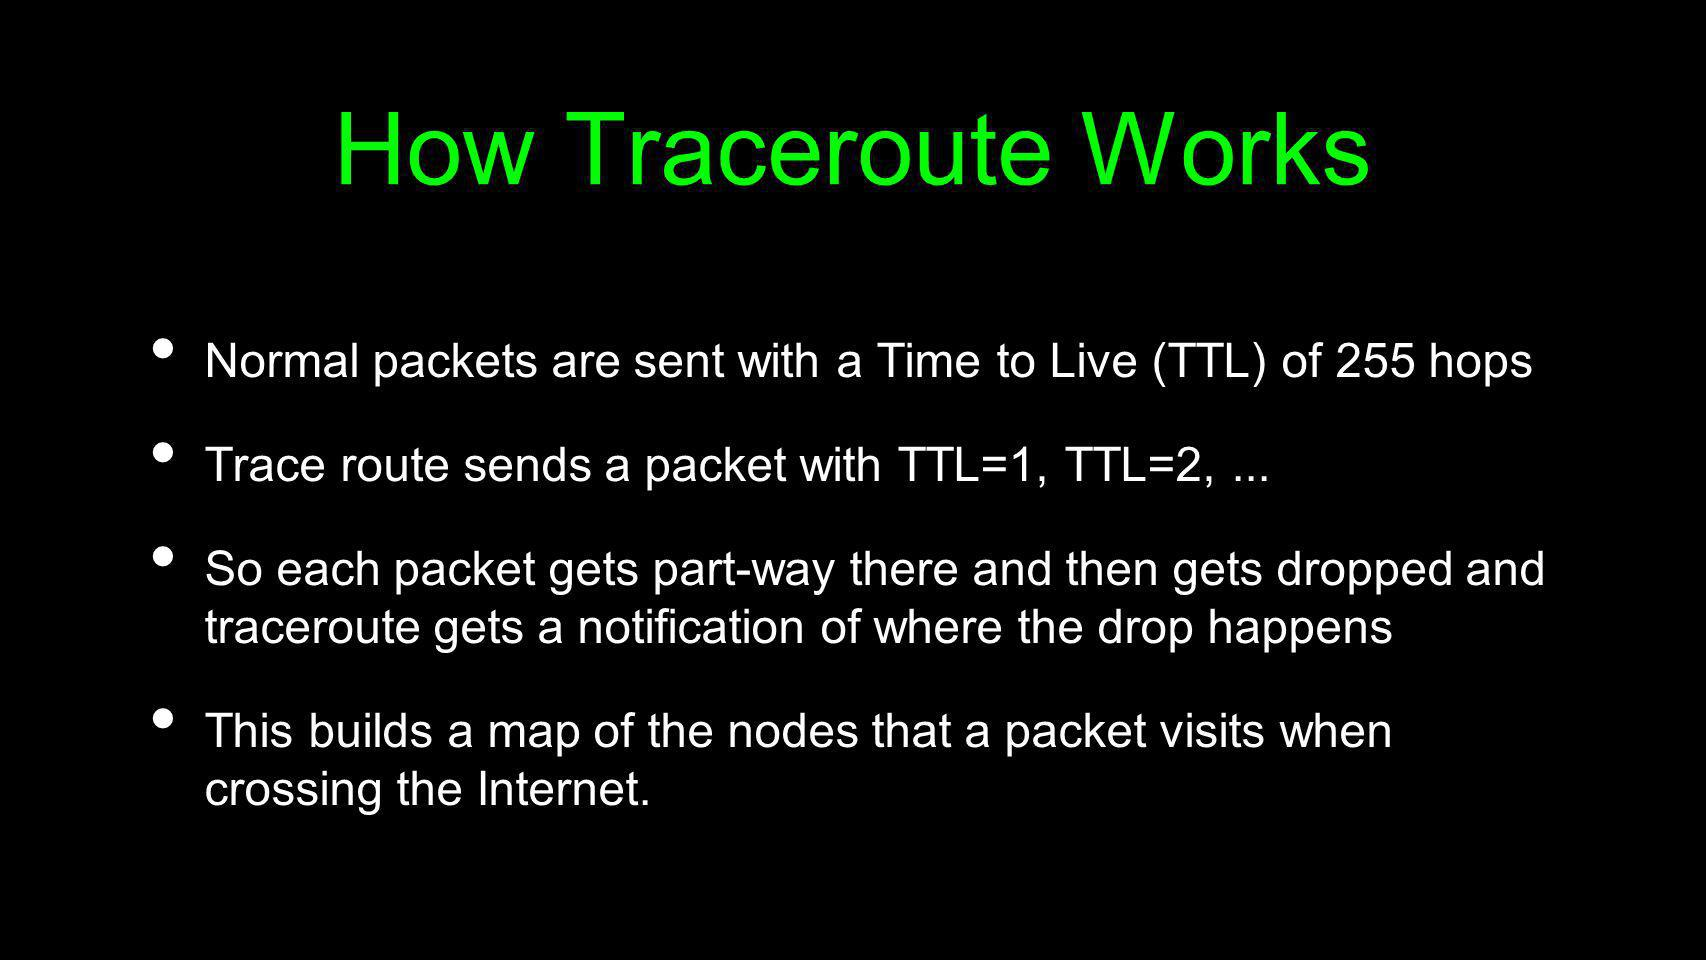 How Traceroute WorksNormal packets are sent with a Time to Live (TTL) of 255 hops. Trace route sends a packet with TTL=1, TTL=2, ...